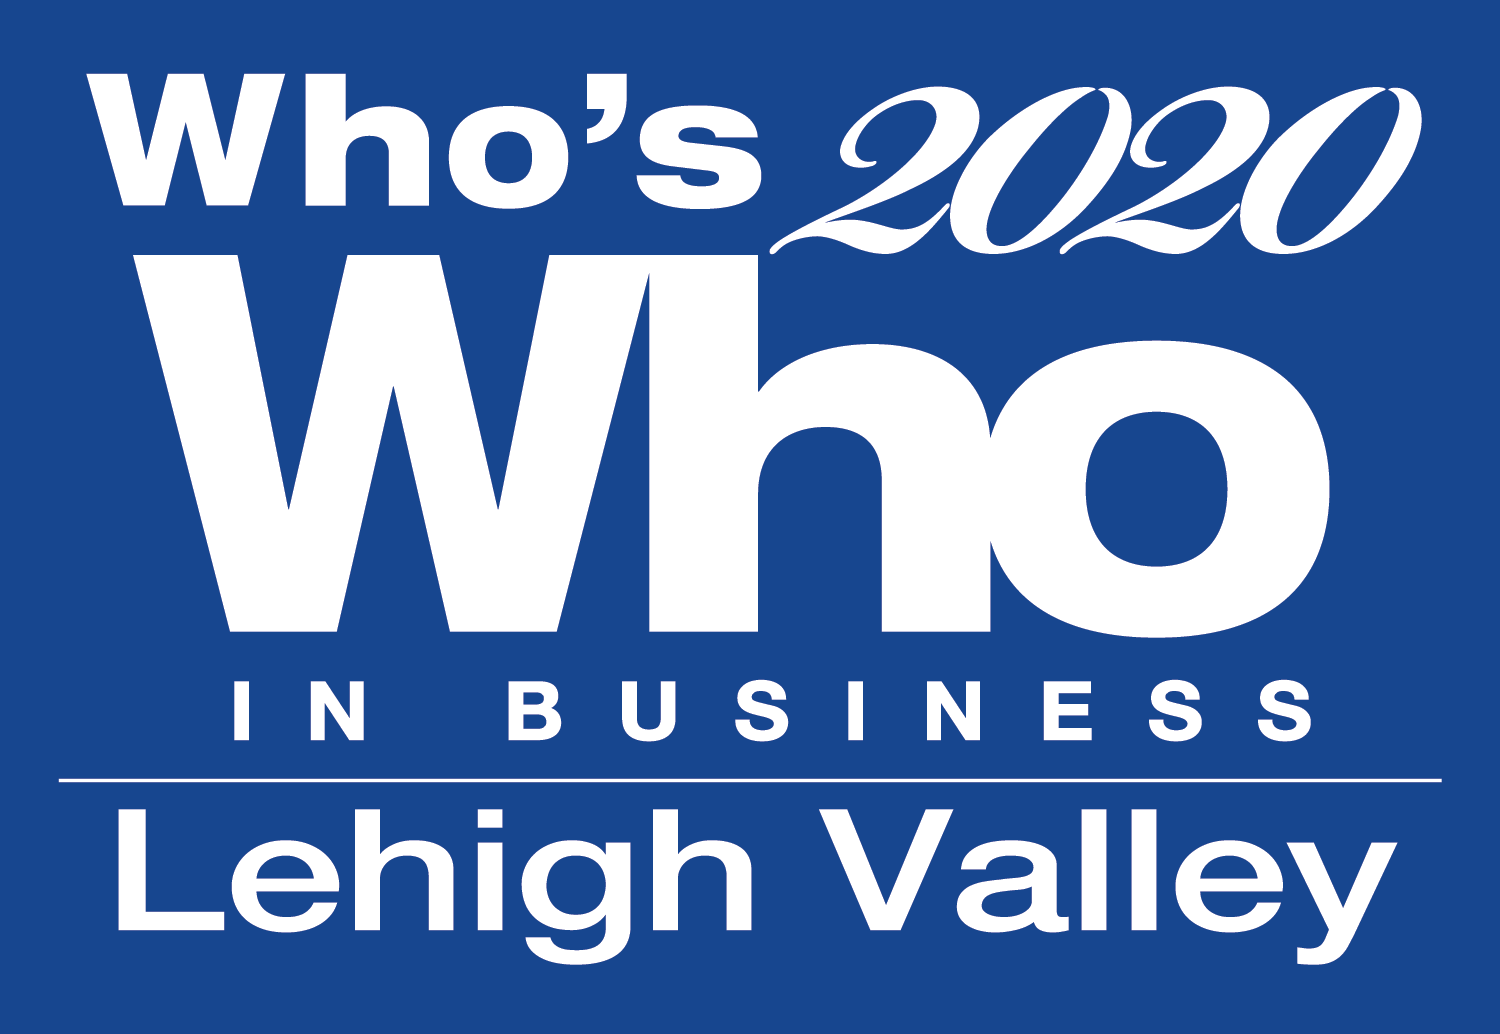 Who's Who Lehigh Valley